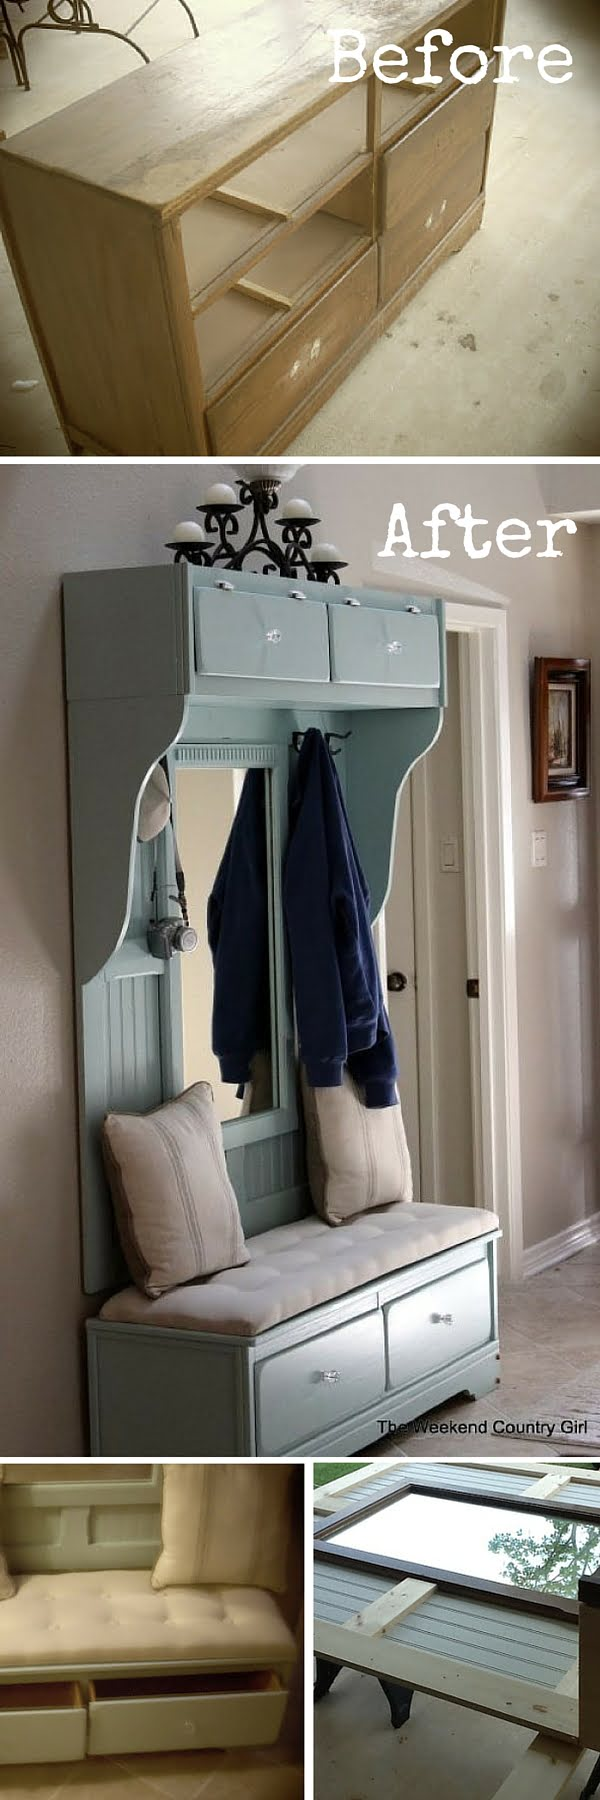 Check out the tutorial:  Turn a Dresser into a Mudroom Bench